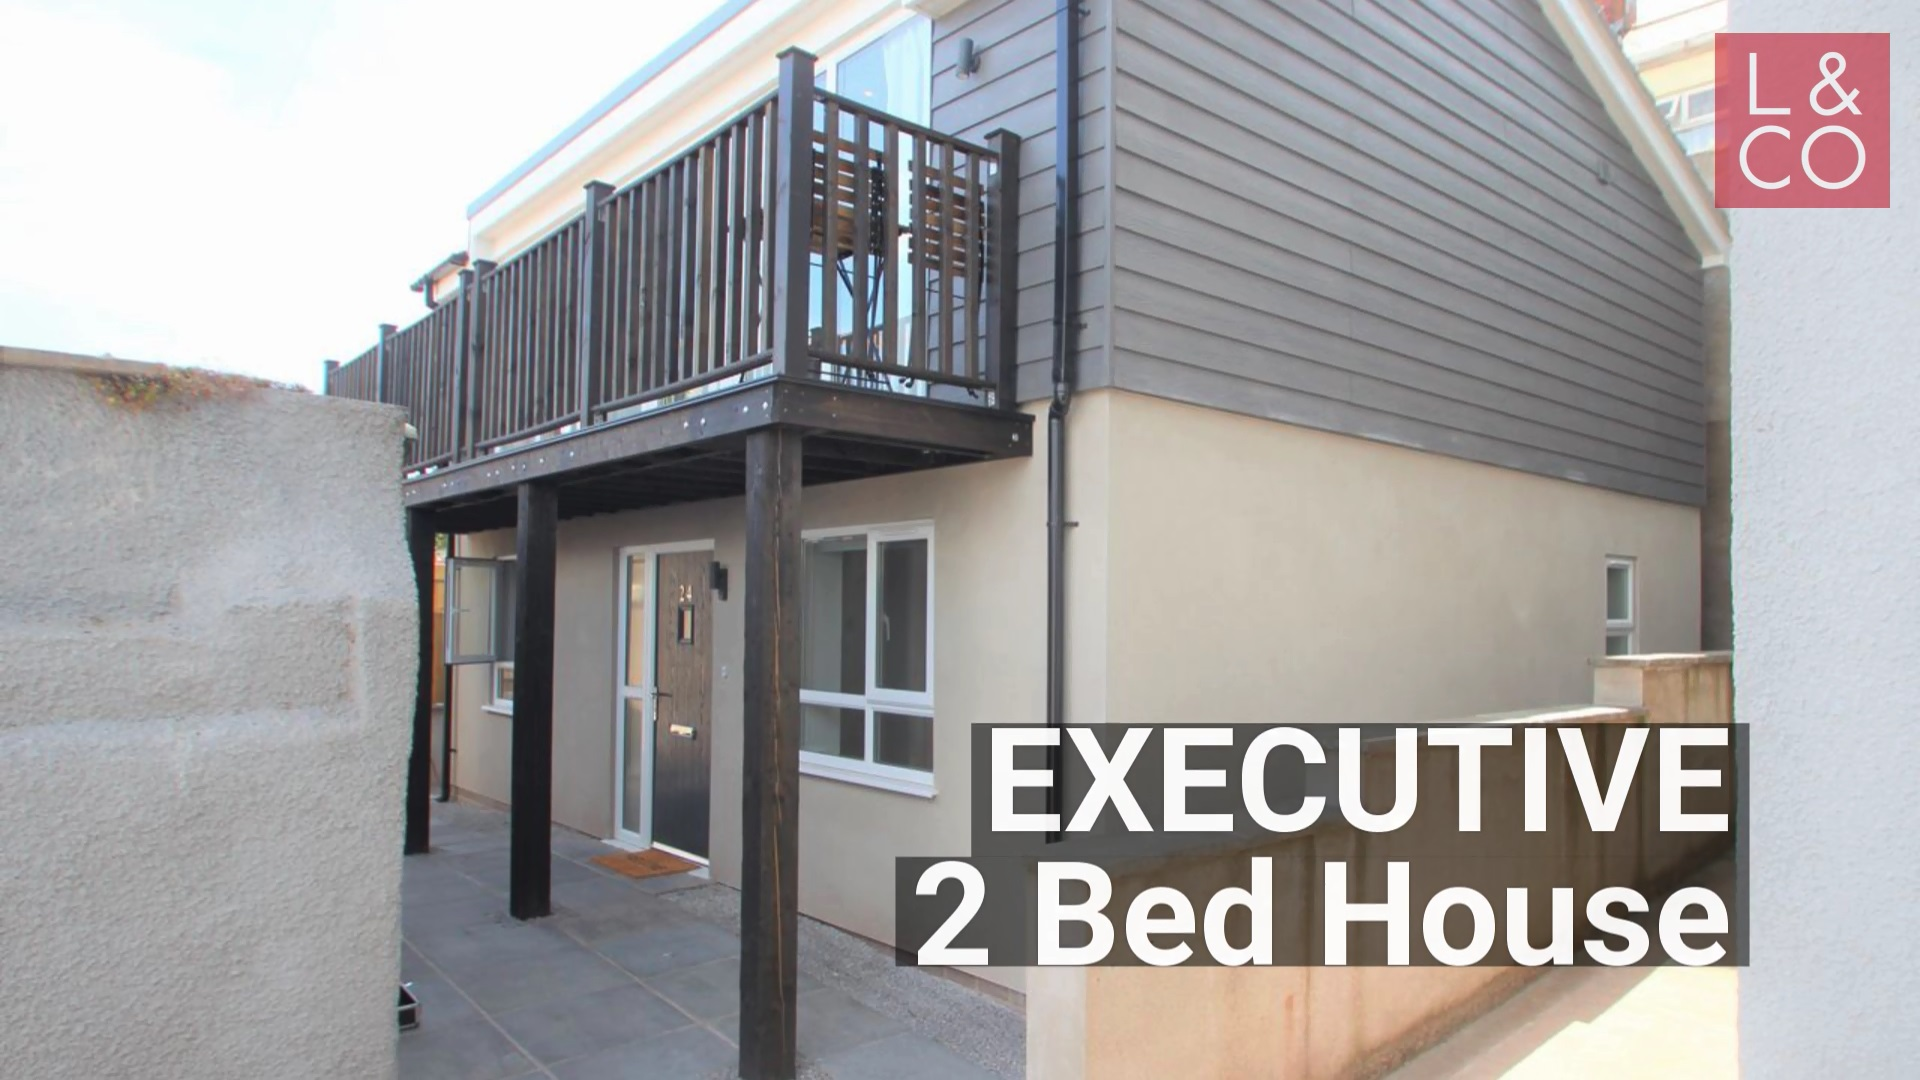 EXECUTIVE FURNISHED HOME - Hill Street, Newport